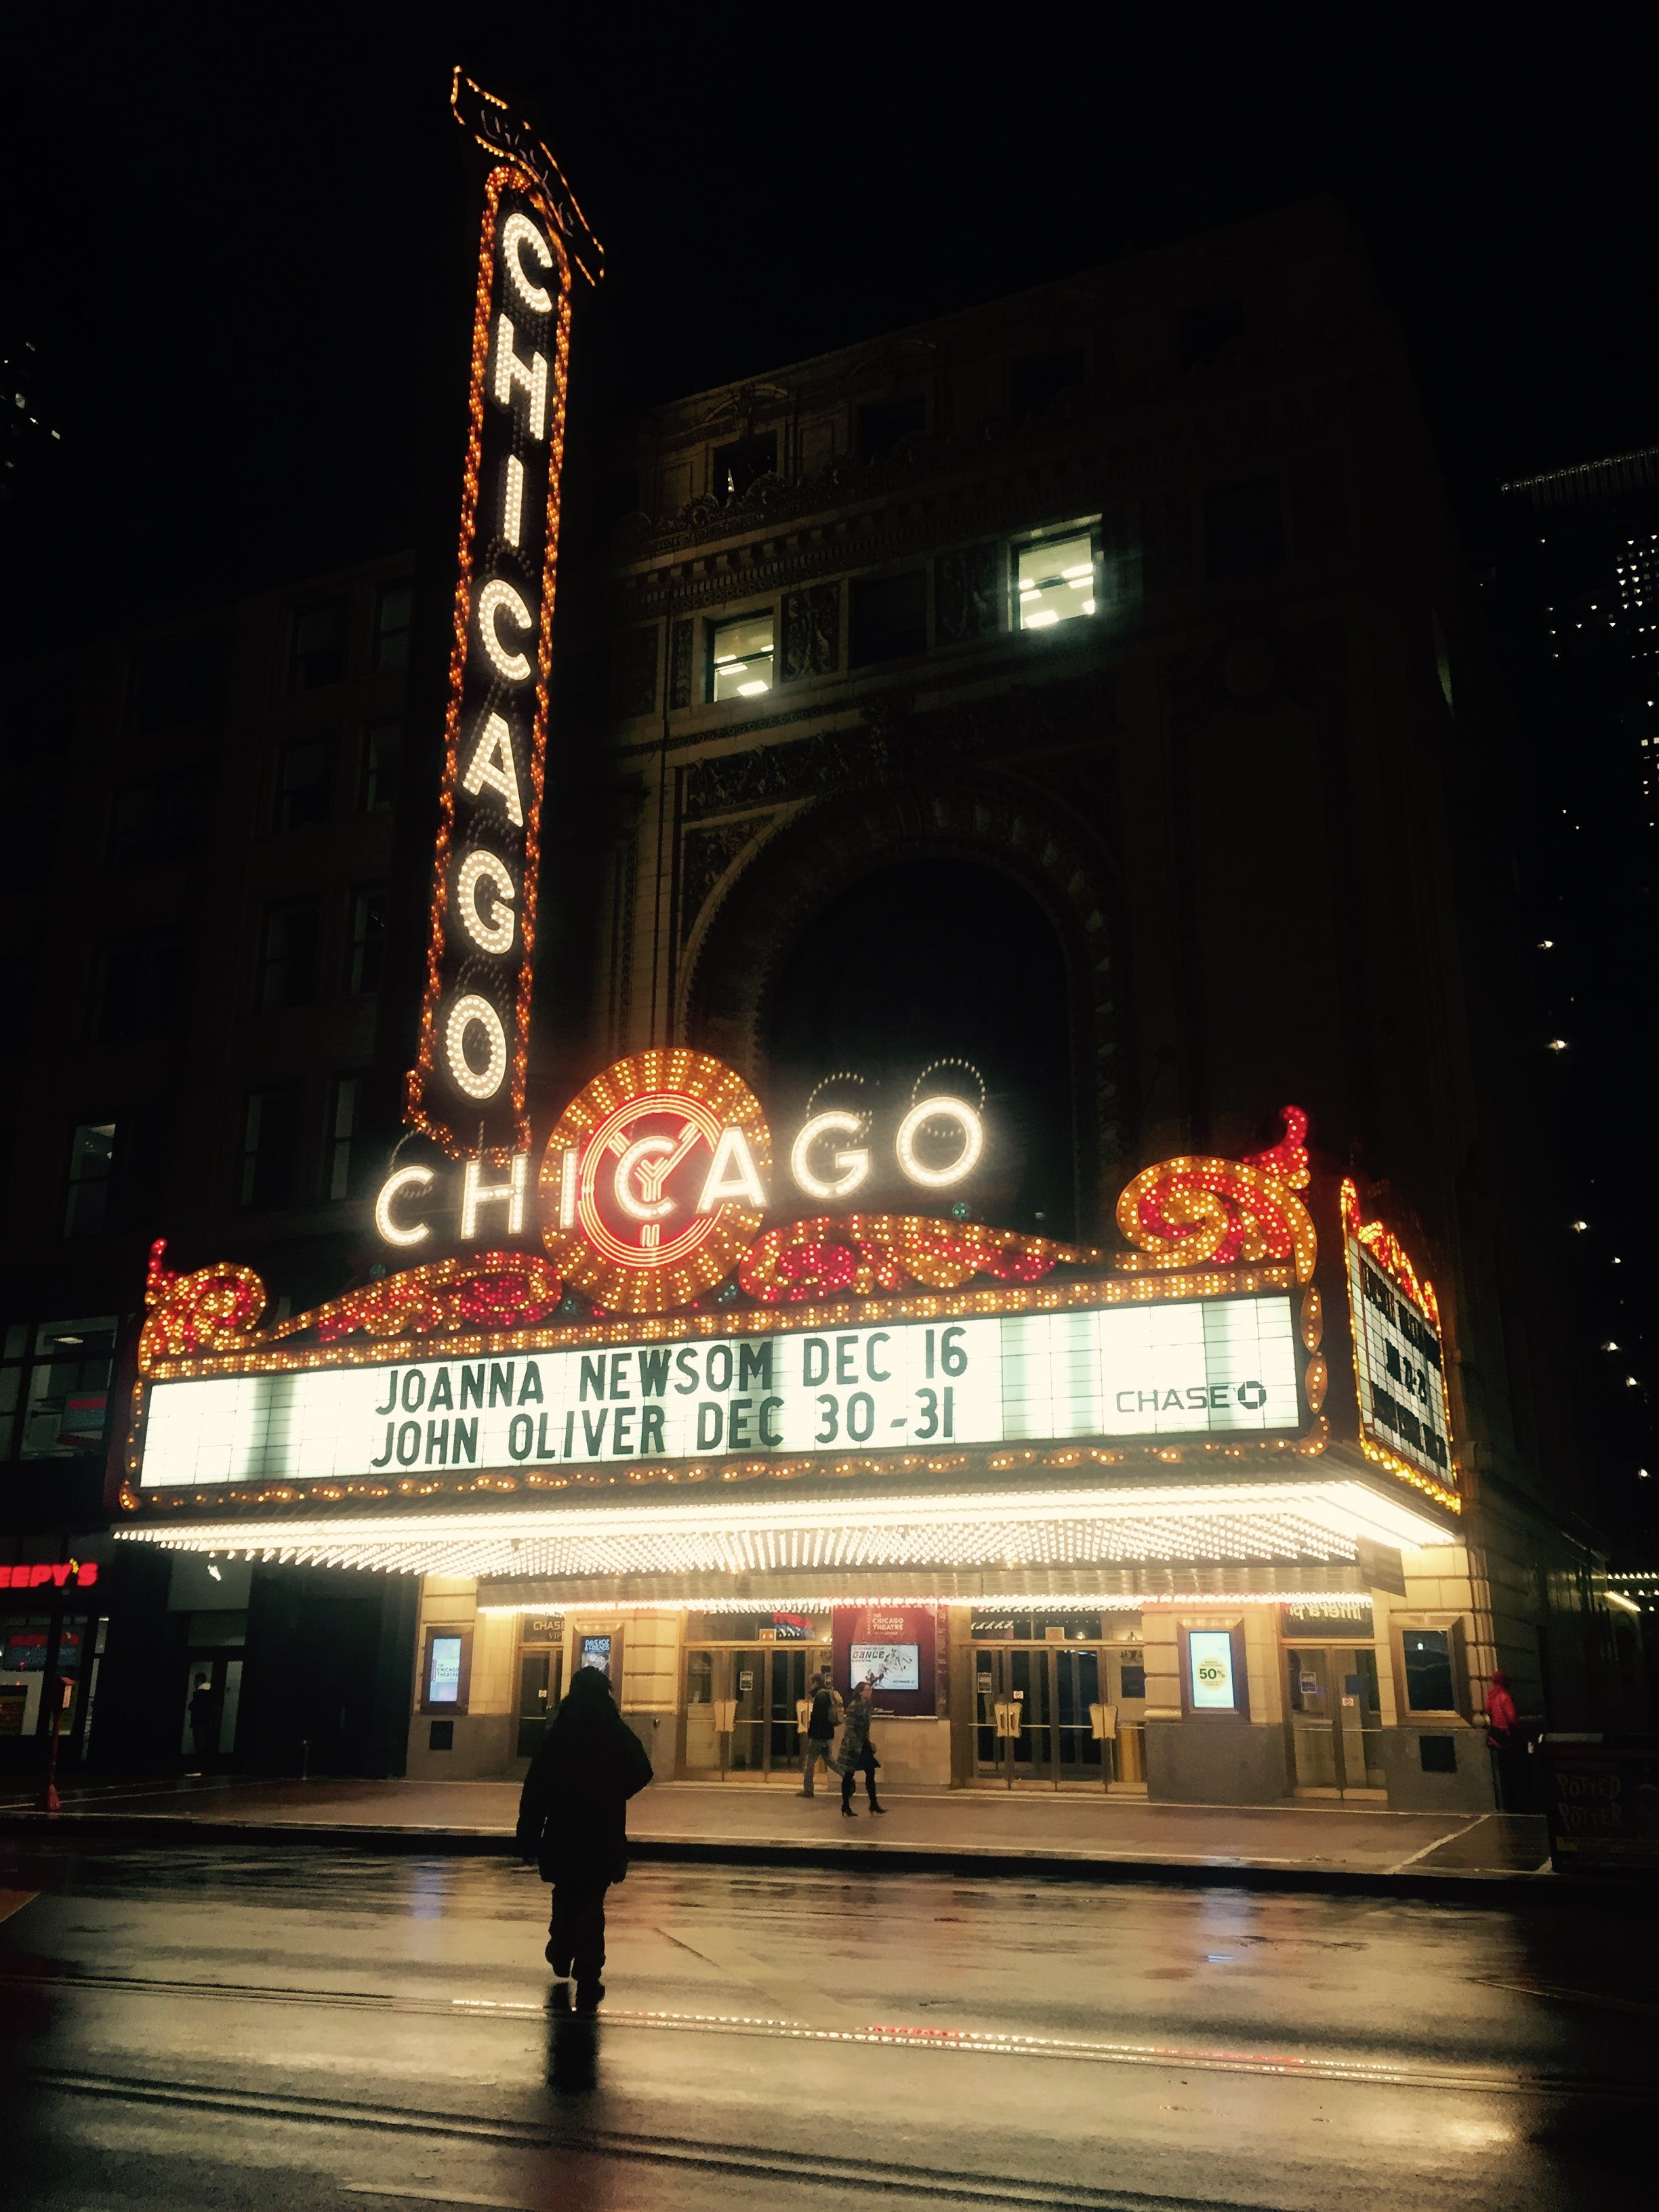 Chicago Movie Theater during Nighttime